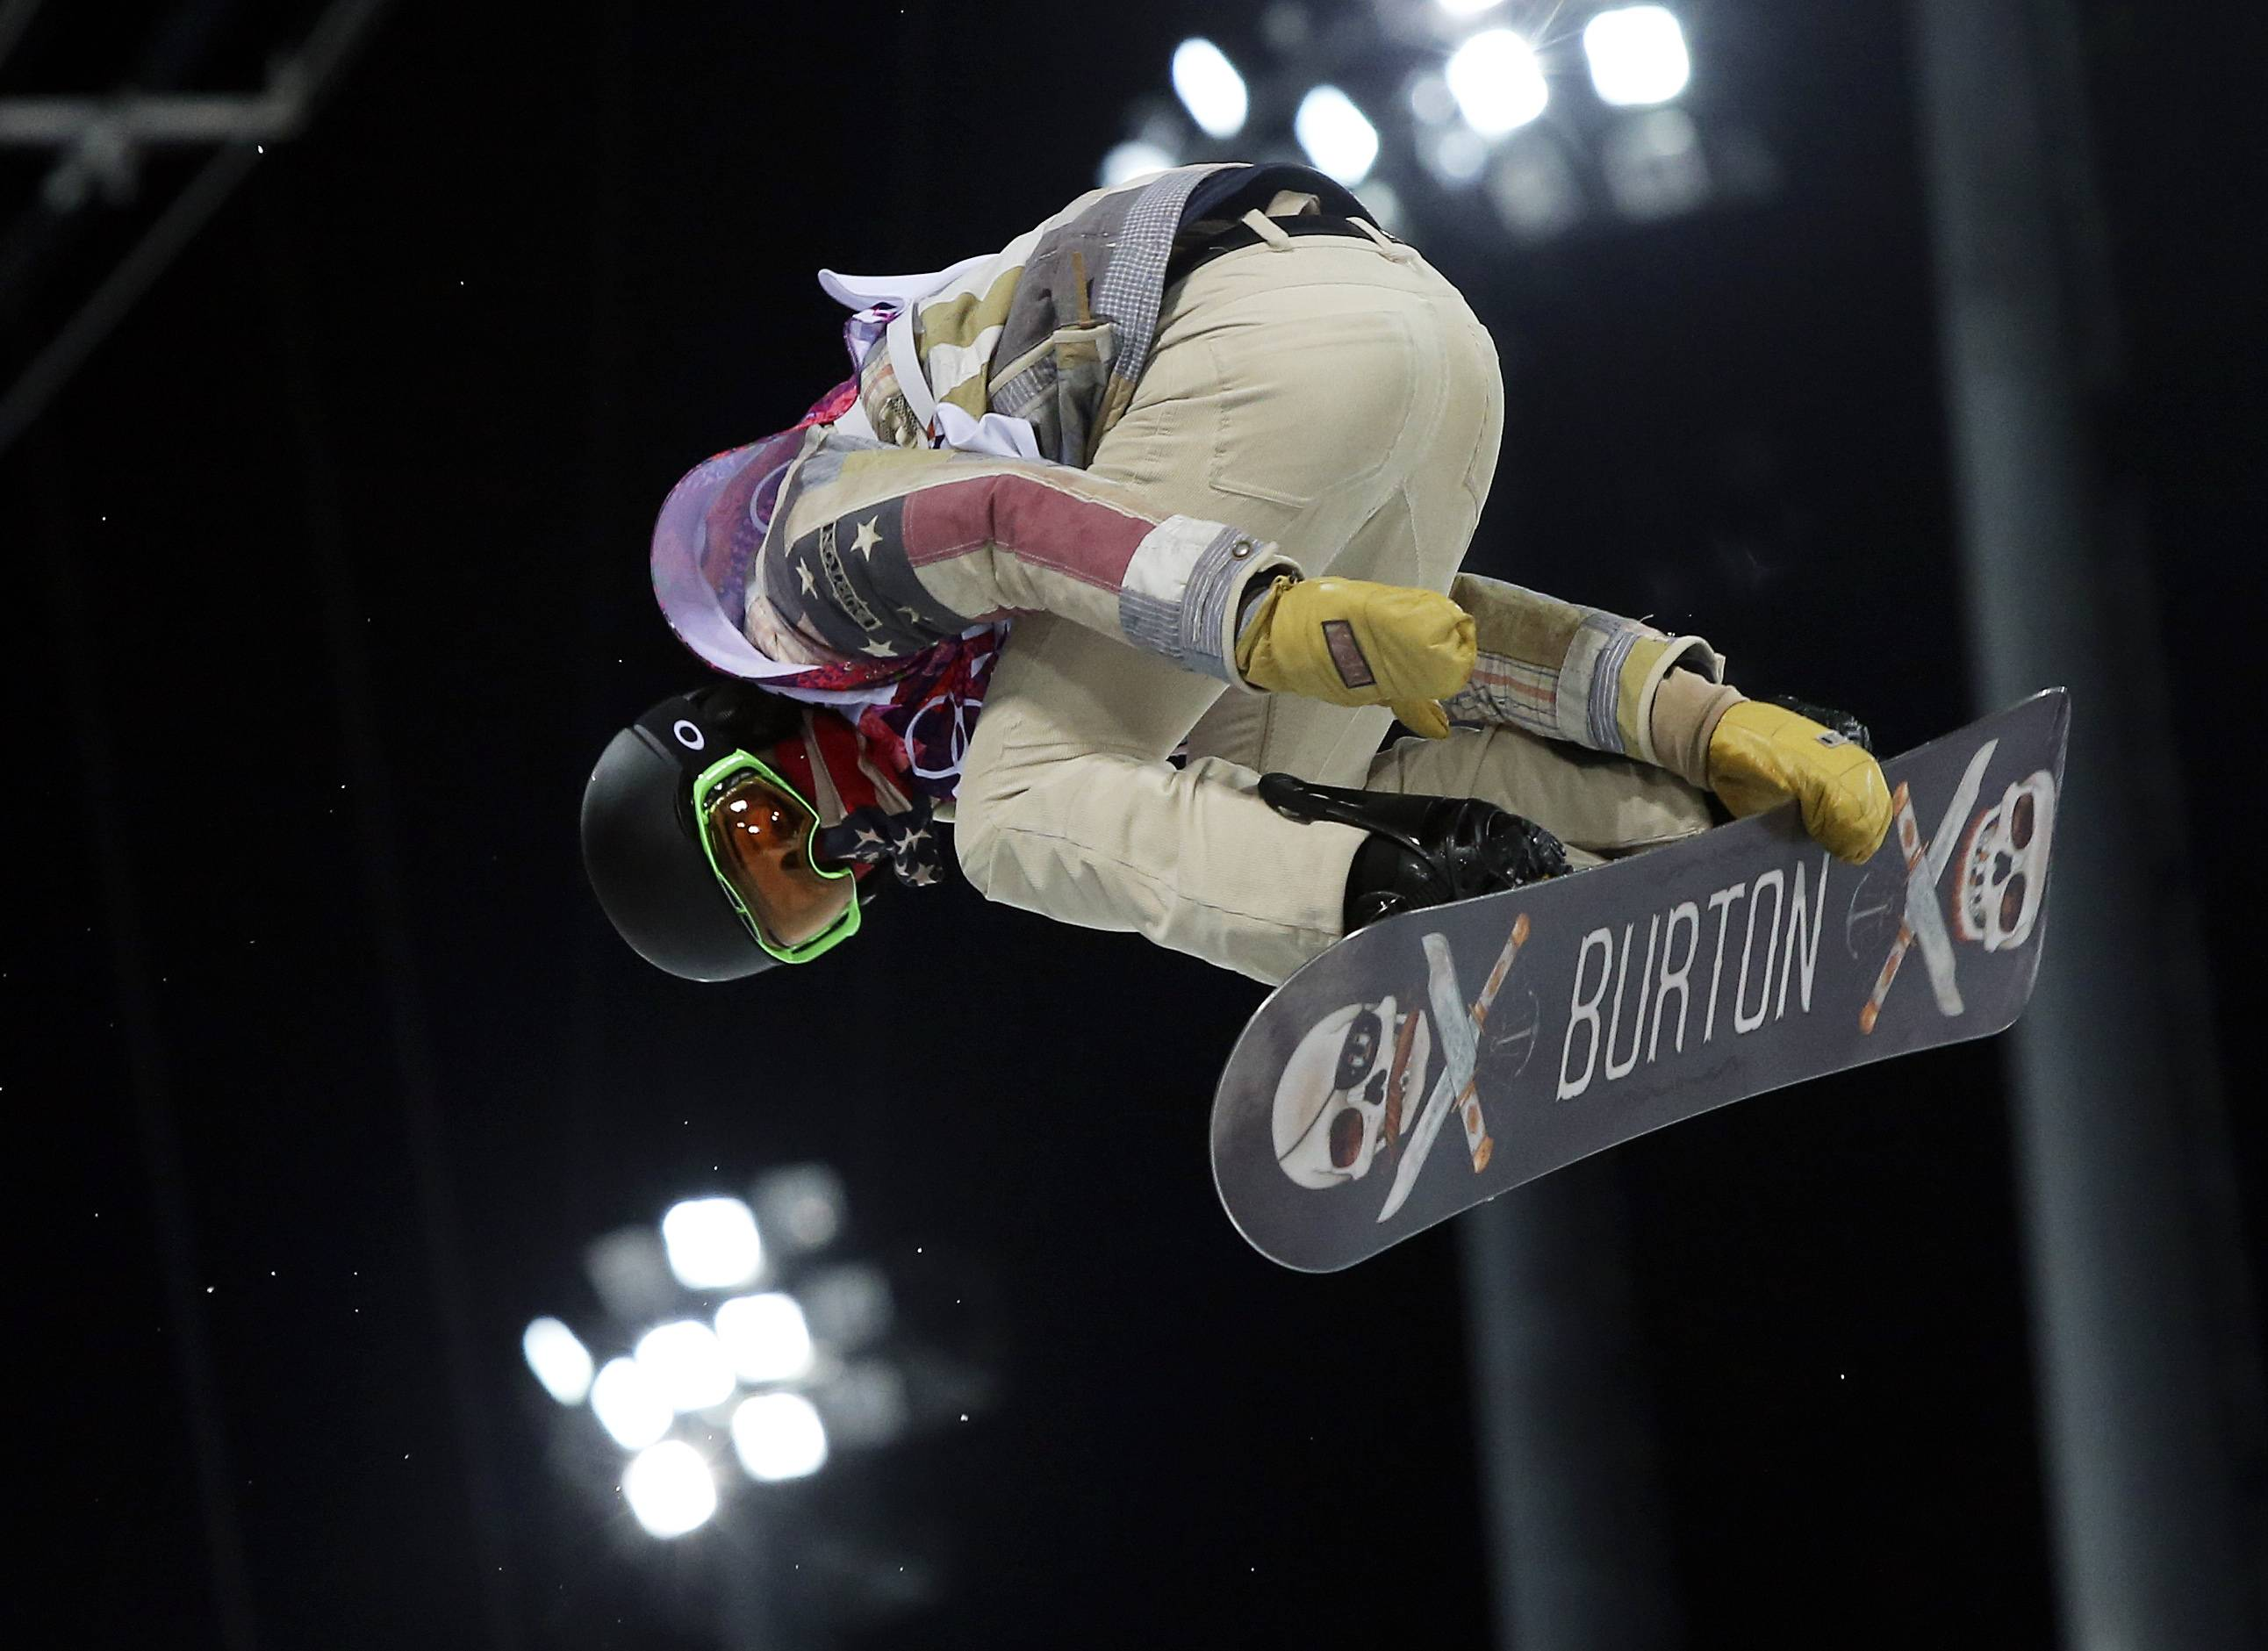 Shaun White gets air Monday during a snowboard half pipe training session at the Rosa Khutor Extreme Park at the 2014 Winter Olympics in Krasnaya Polyana, Russia.